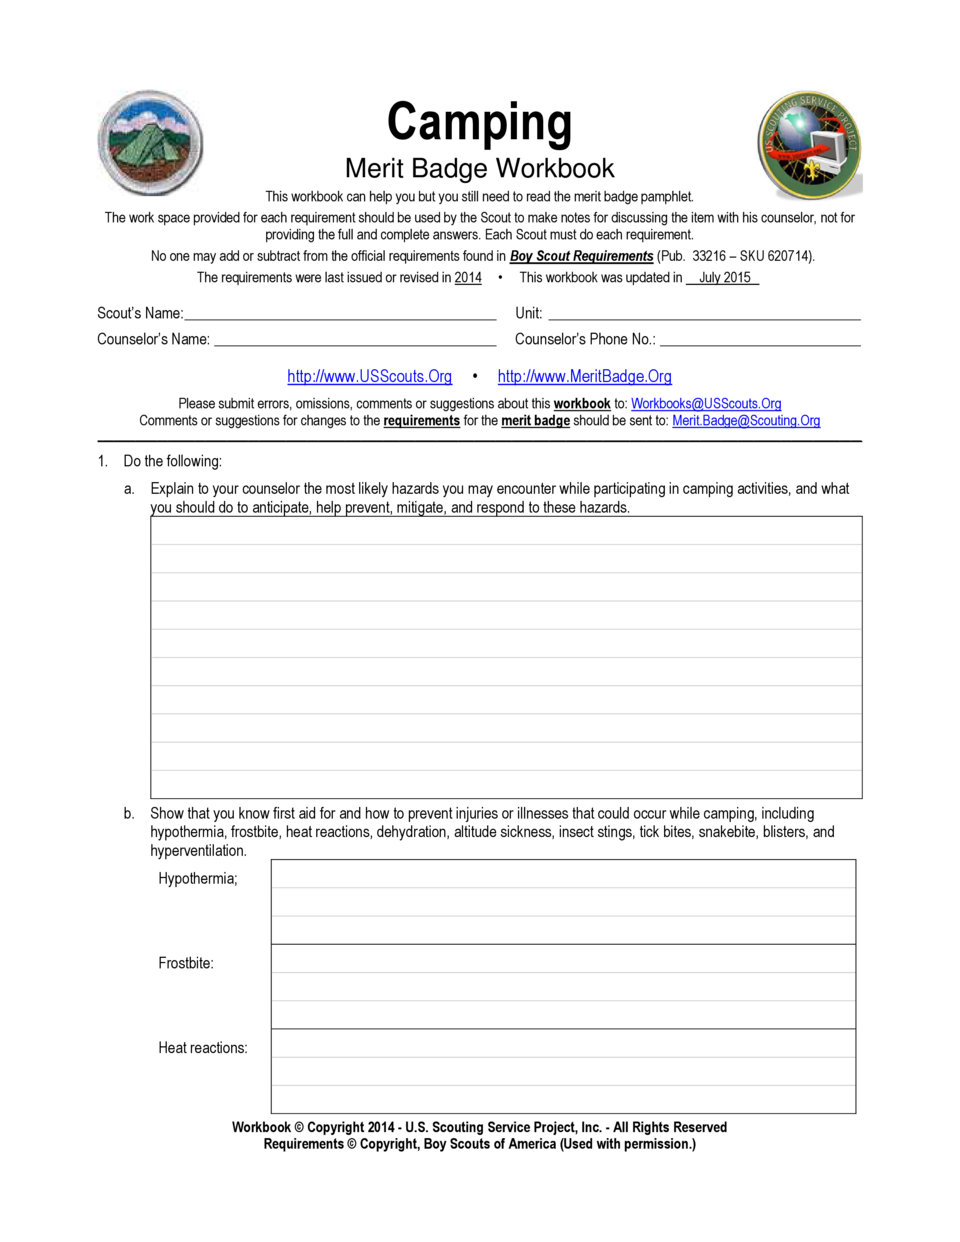 Worksheet Boy Scout Merit Badge Worksheet Answers camping merit badge simplebooklet com workbook this can help you but still need to read the